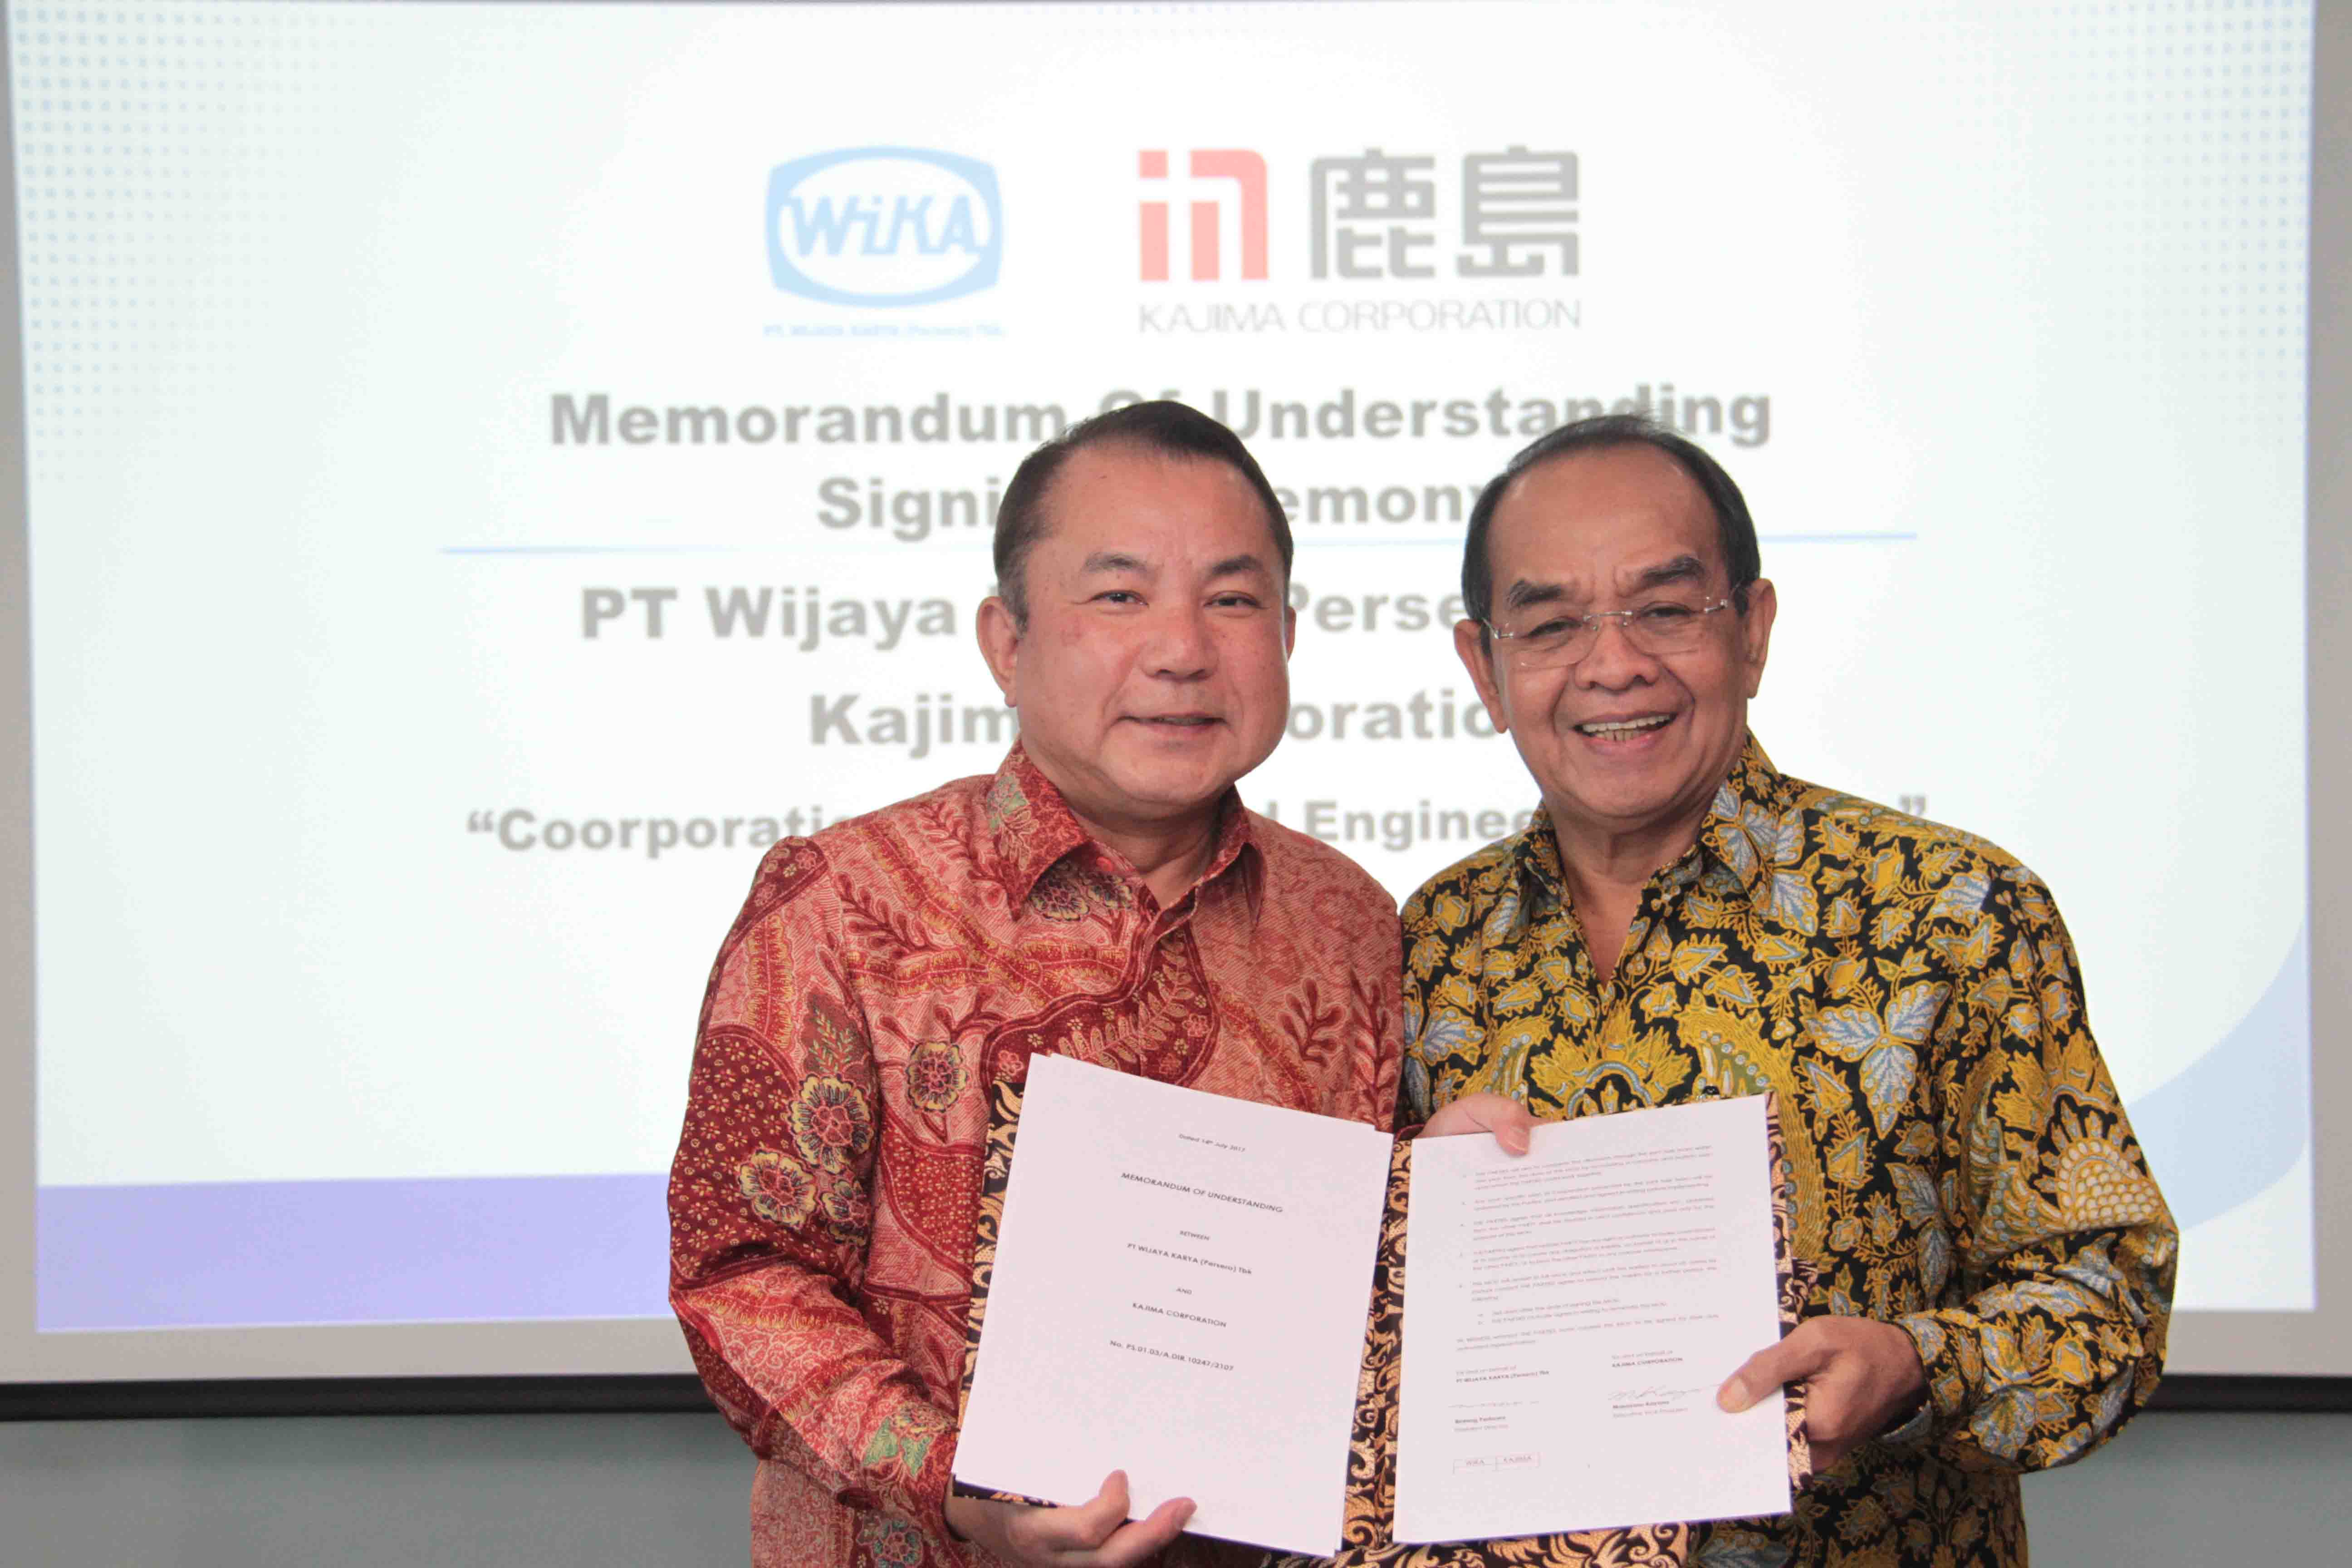 WIKA – Kajima Corporation Signed a MoU in the field of R&D